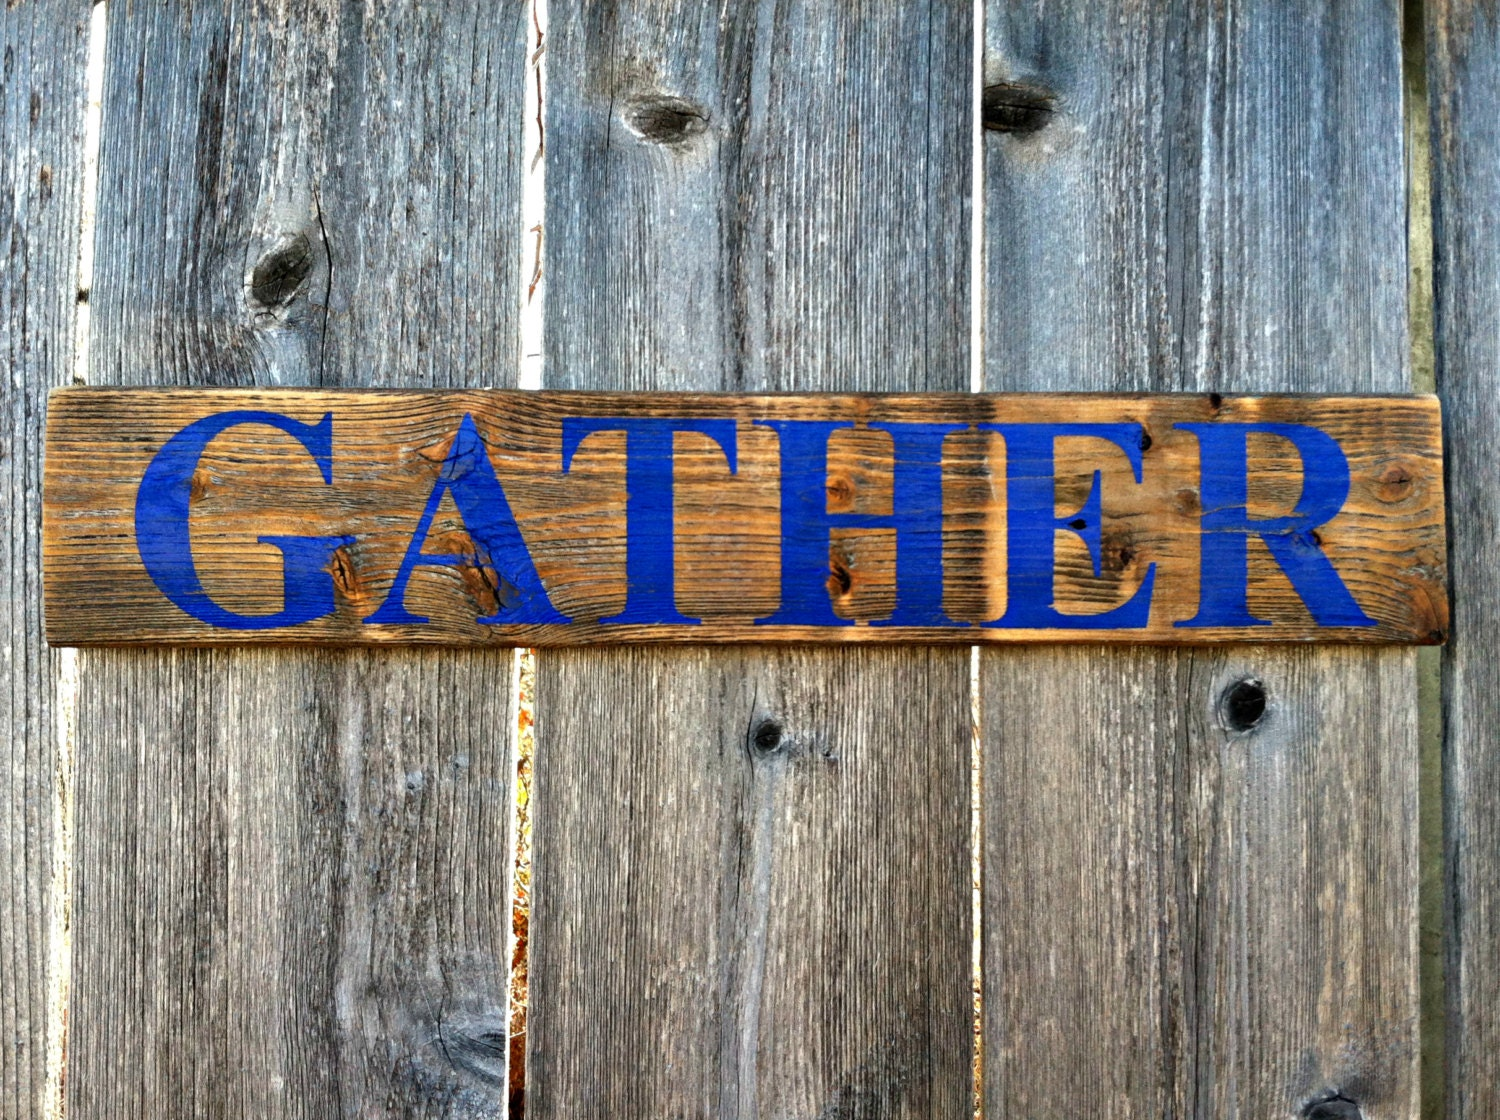 Wall Decor Gather : Rustic handmade wall decor gather wooden sign by